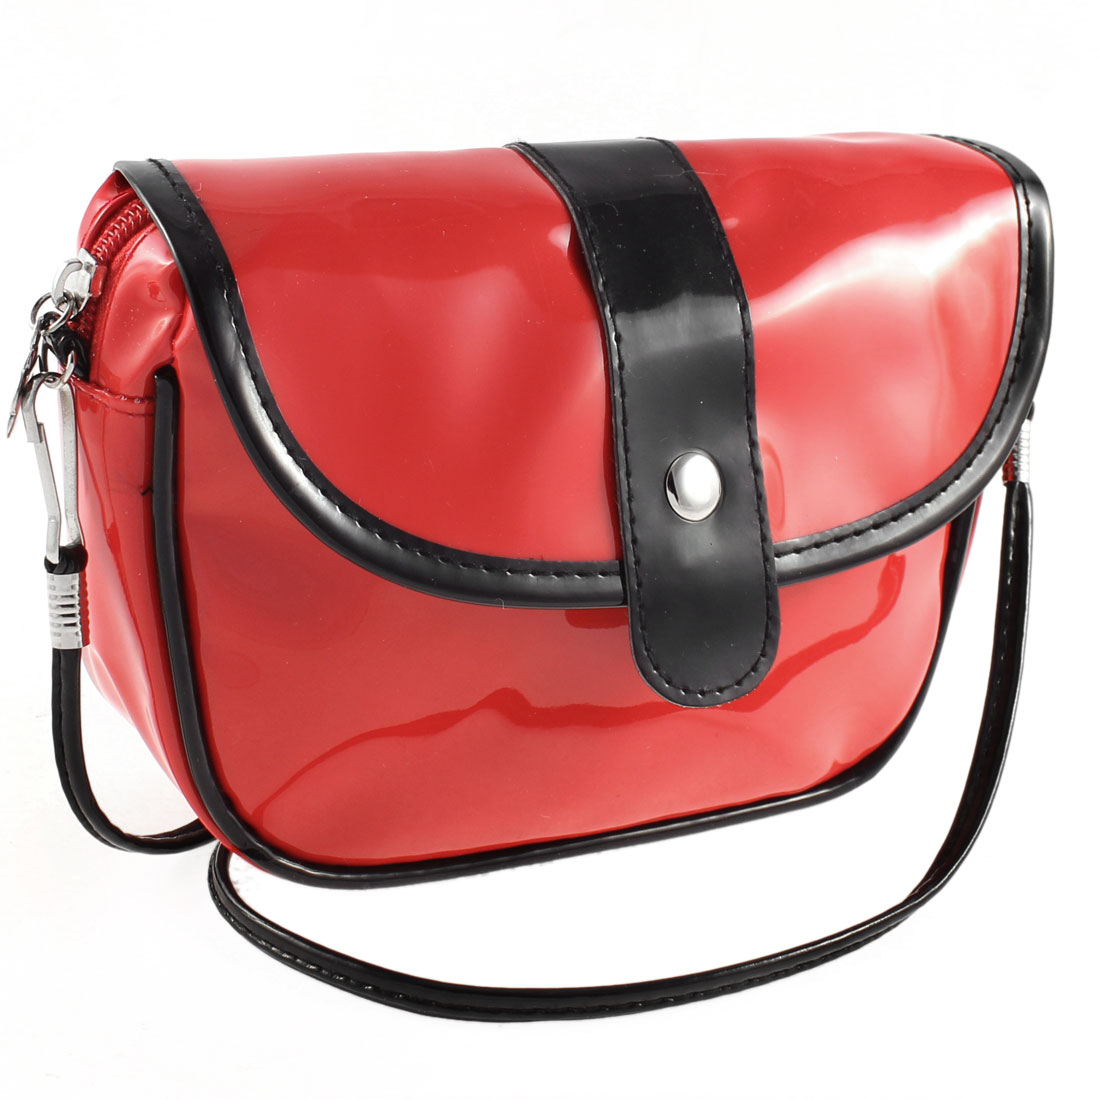 Press Button Dual Cards Pockets Patent Leather Shoulder Bag Satchel Red